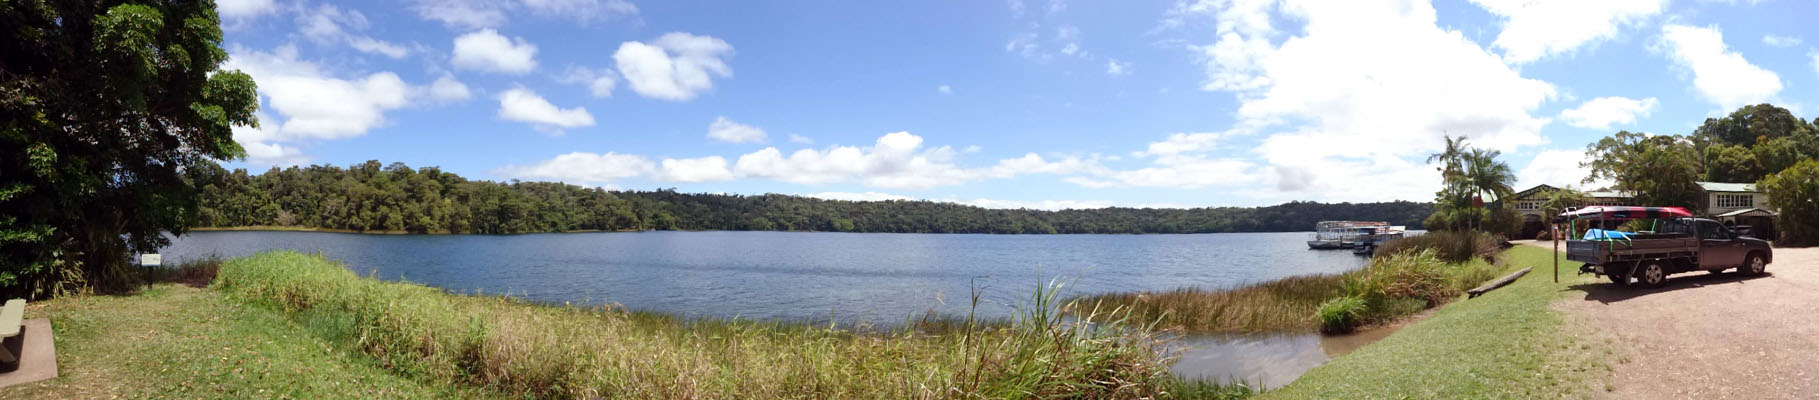 cairns_eacham_lake.jpg